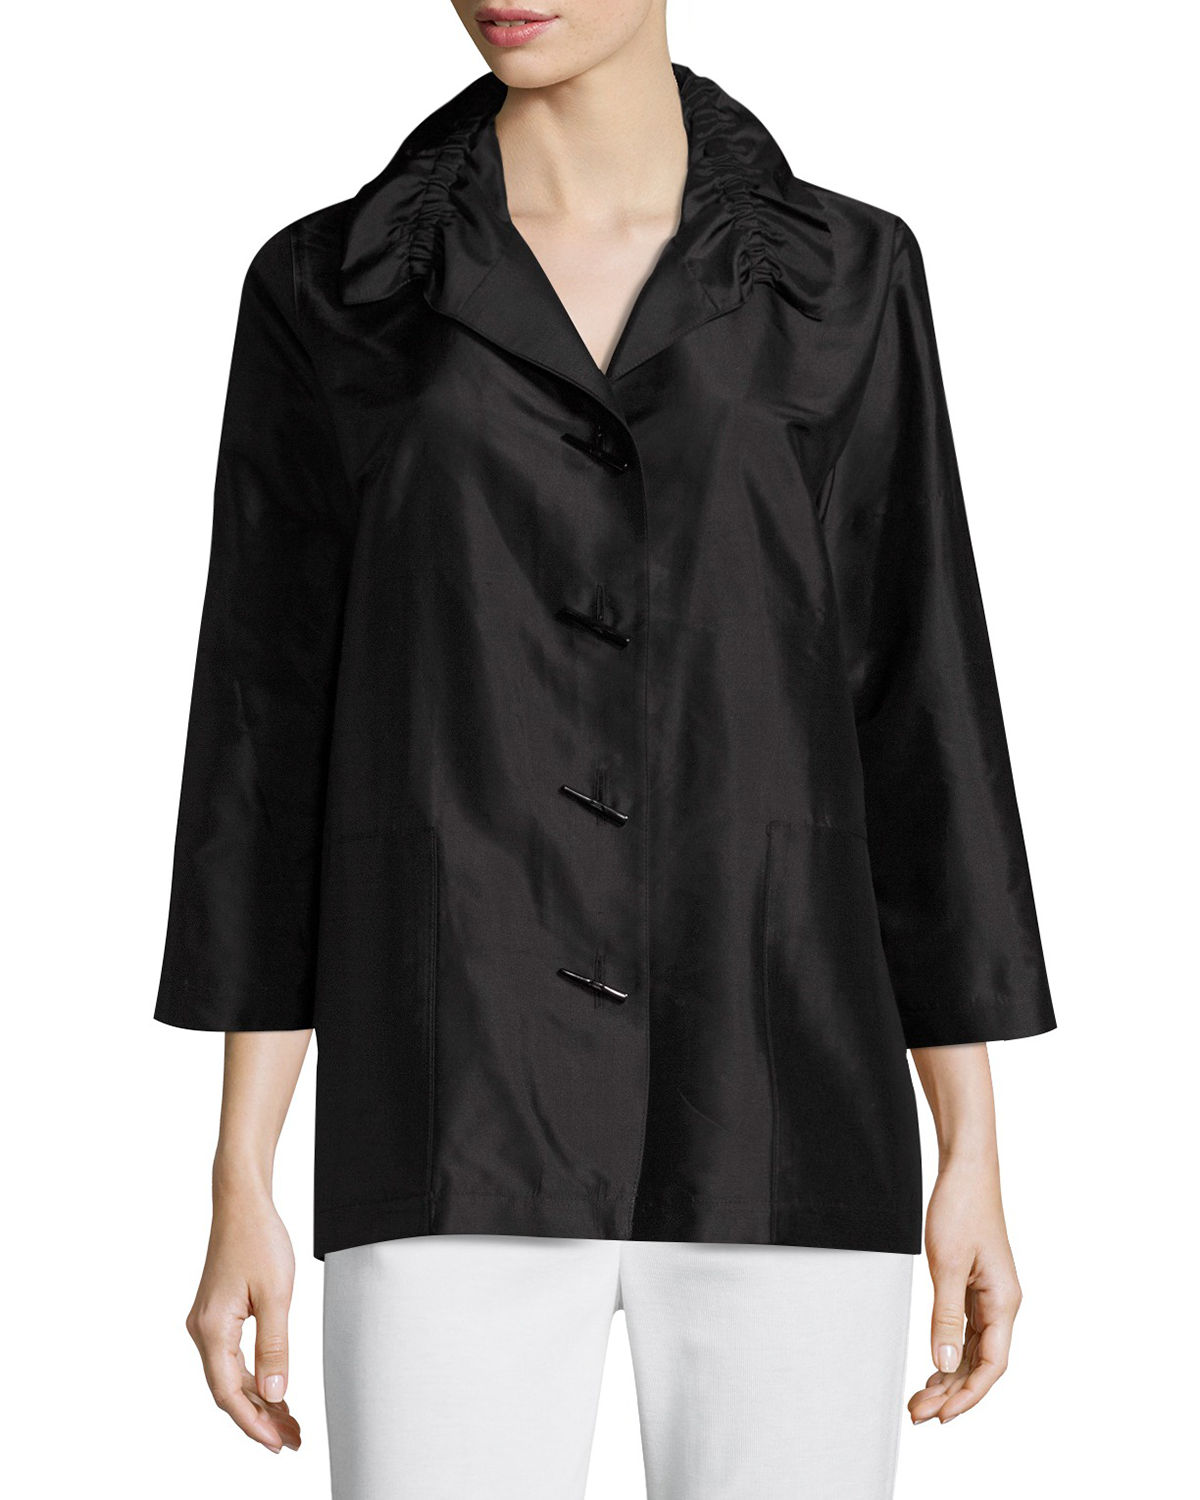 Caroline Rose Plus Size Shantung Silk Shirt Jacket